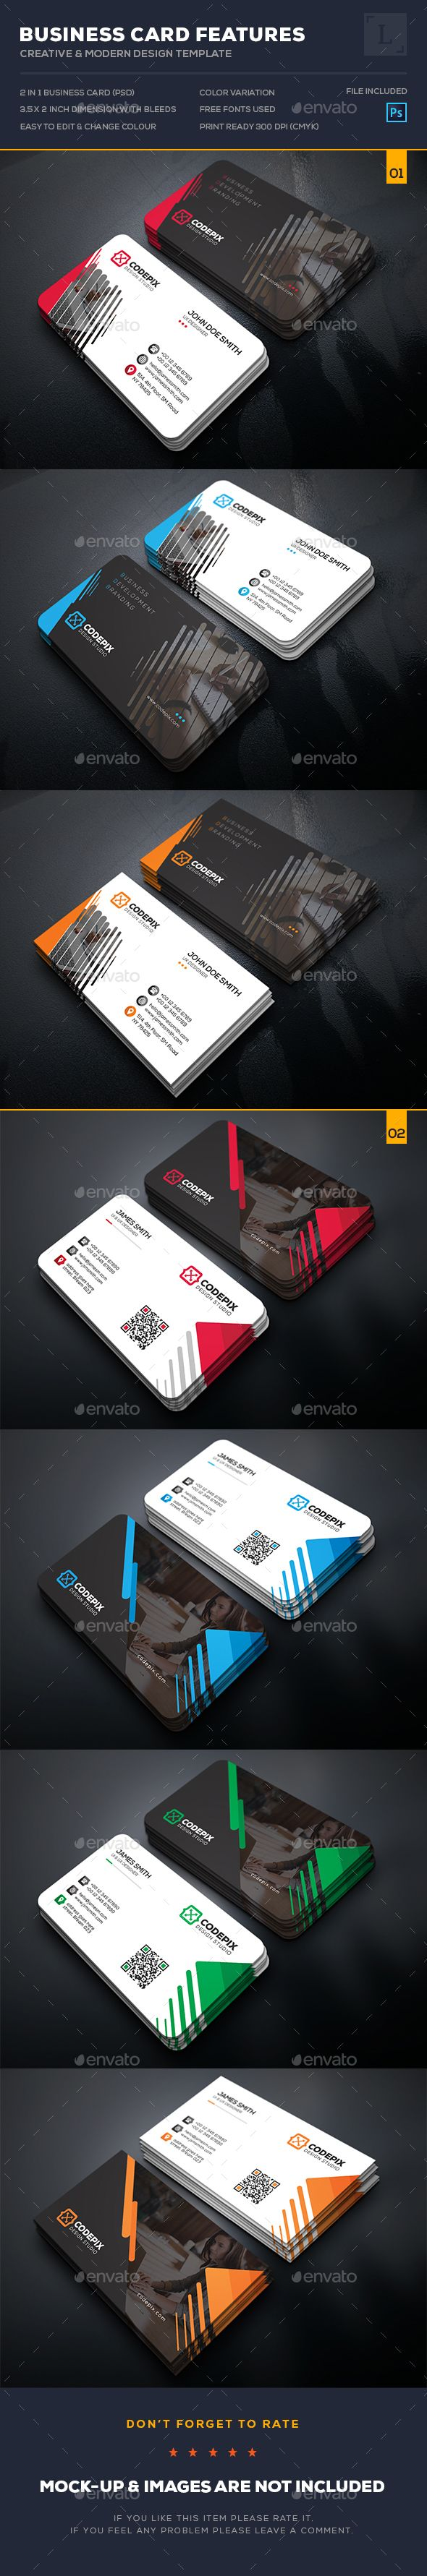 Business Card Bundle - Business Card Template PSD. Download here: http://graphicriver.net/item/business-card-bundle/16421731?s_rank=11&ref=yinkira